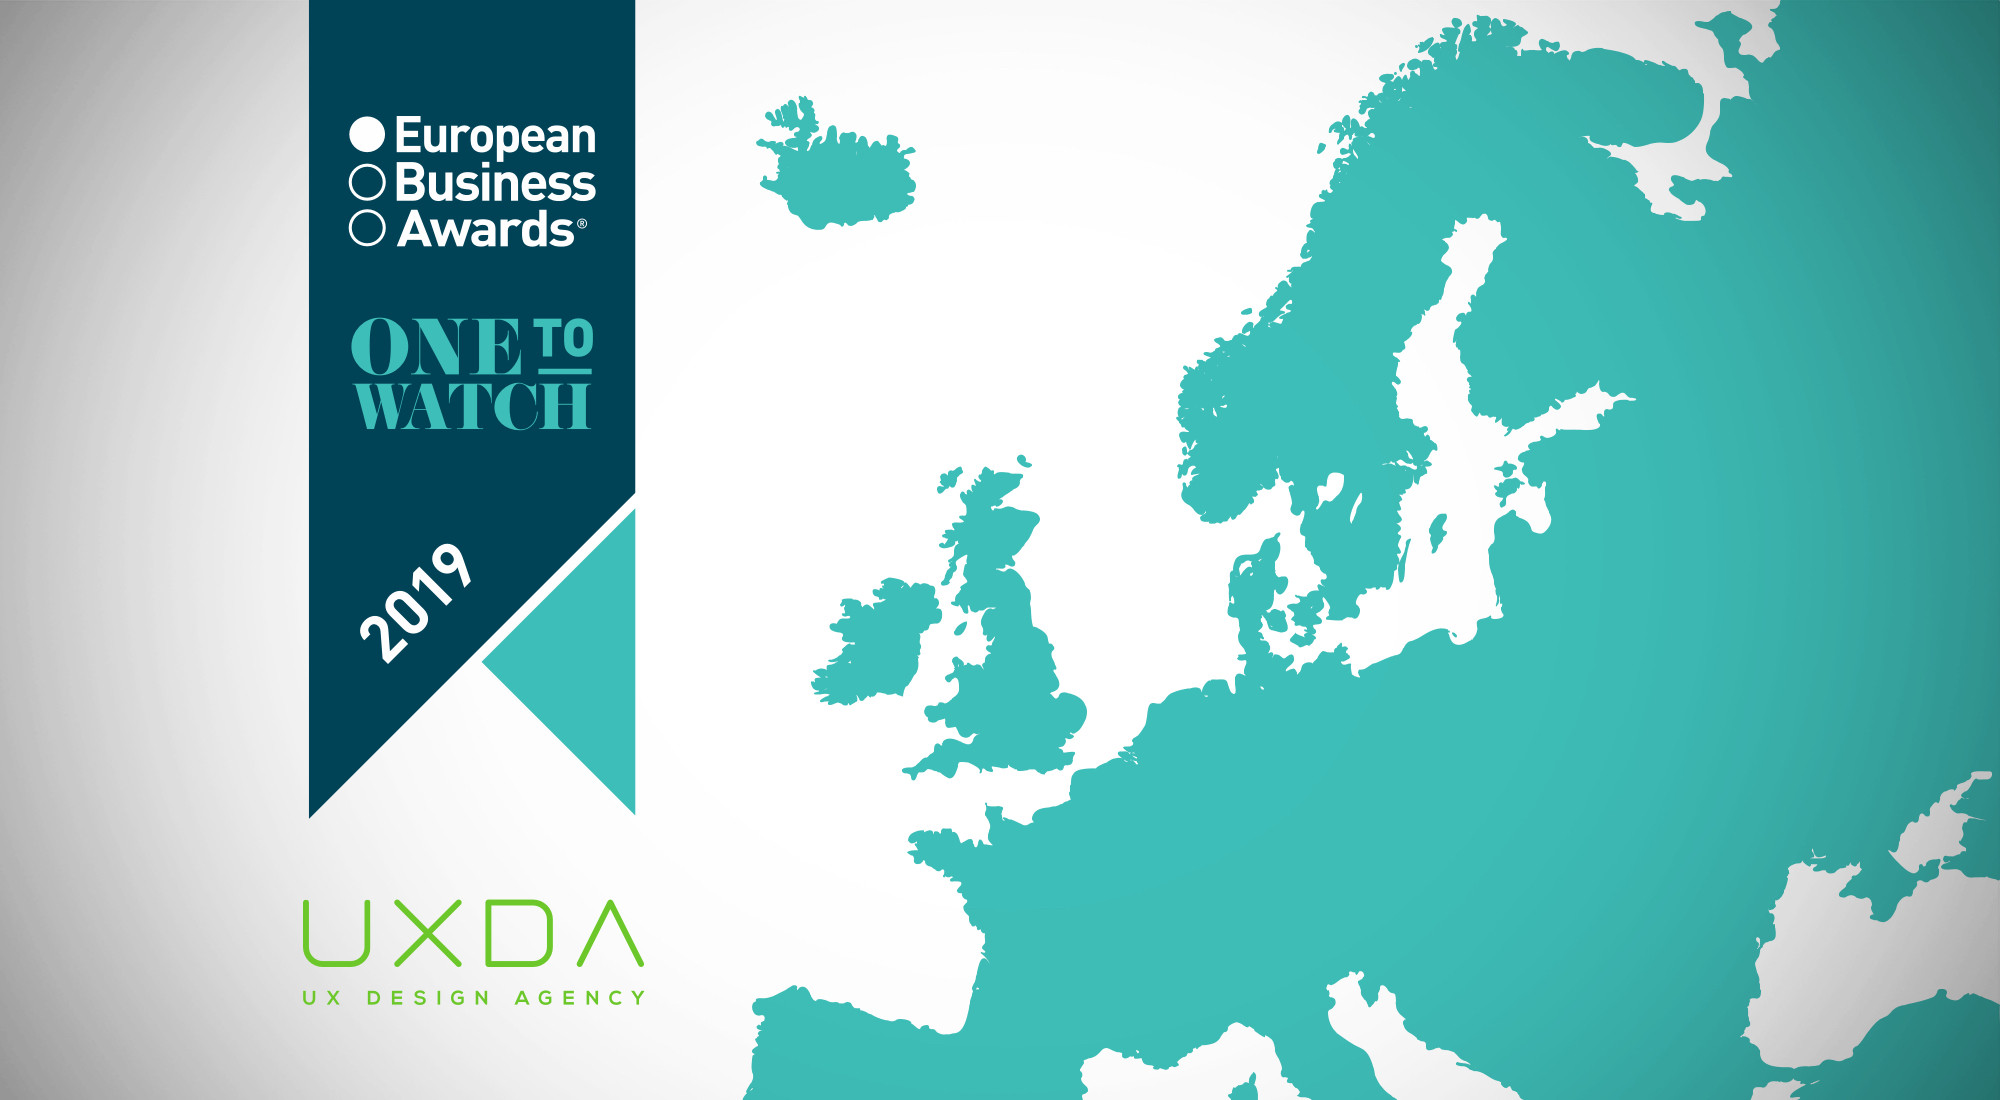 UXDA Amongst the Best Companies in the European Business Awards